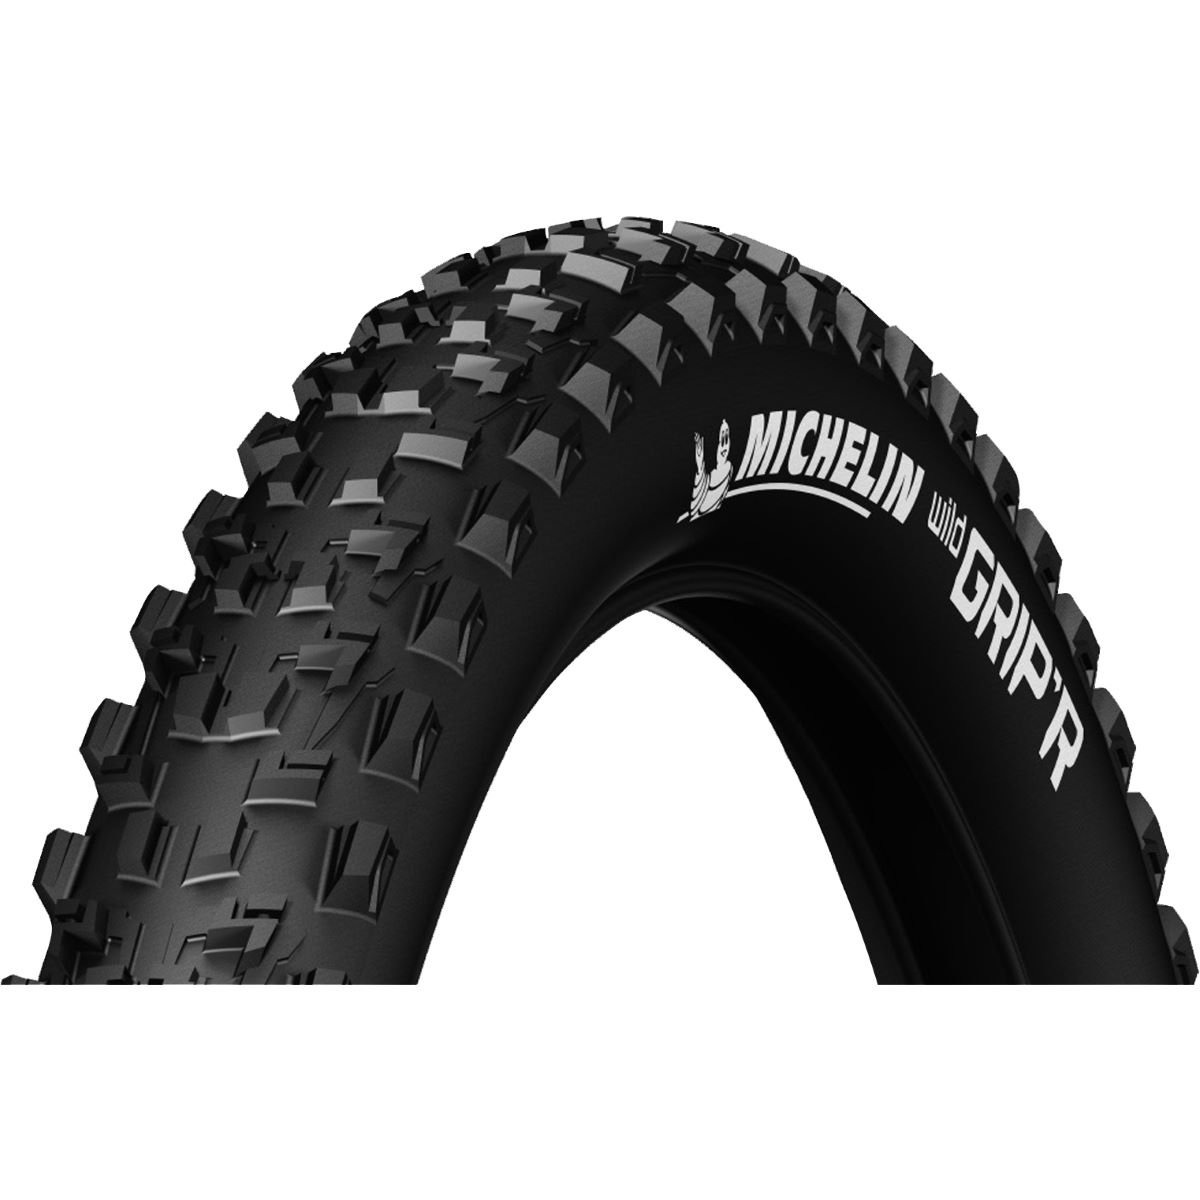 Pneu VTT Michelin Wild Grip'r Advanced Reinforced 27,5 pouces - Noir